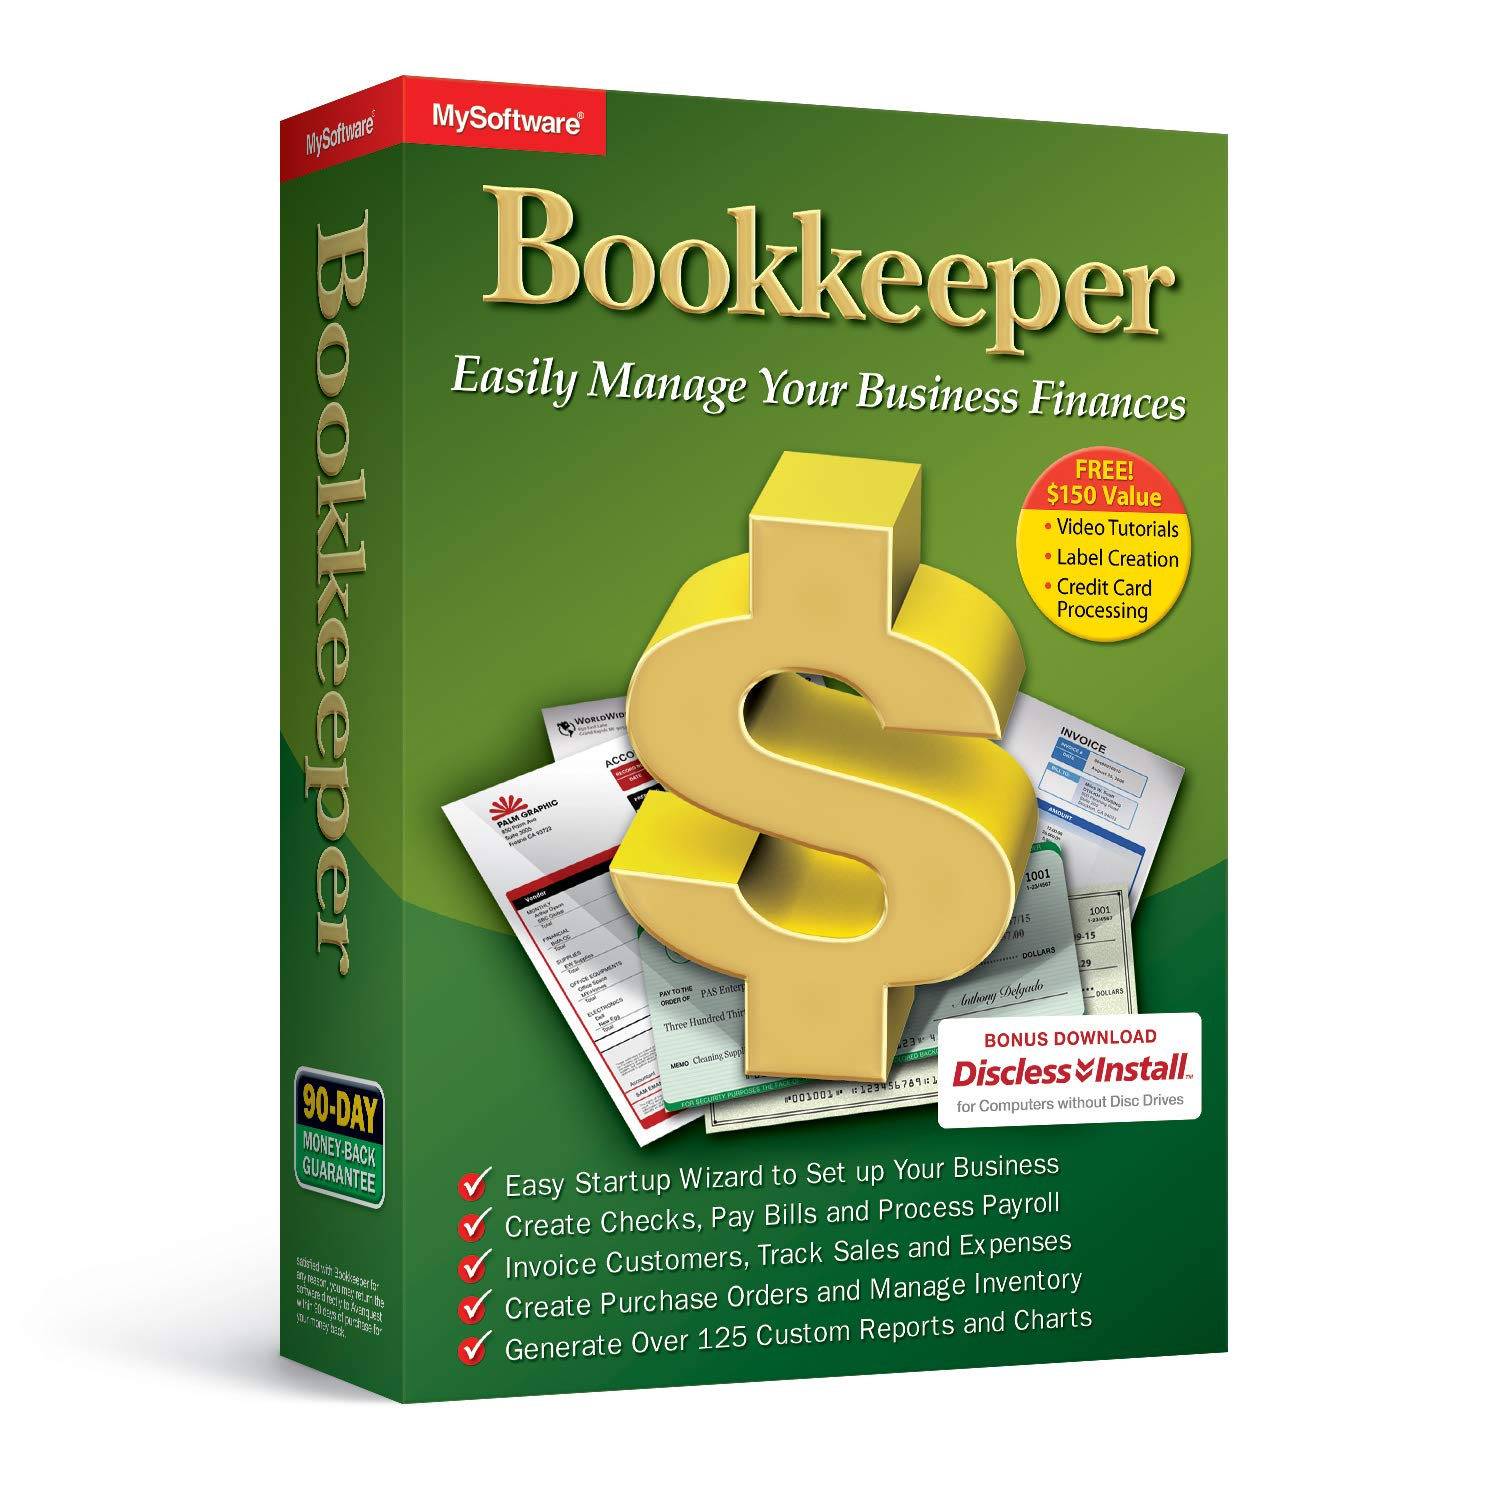 Bookkeeper: Easily Manage Your Business Finances by Avanquest